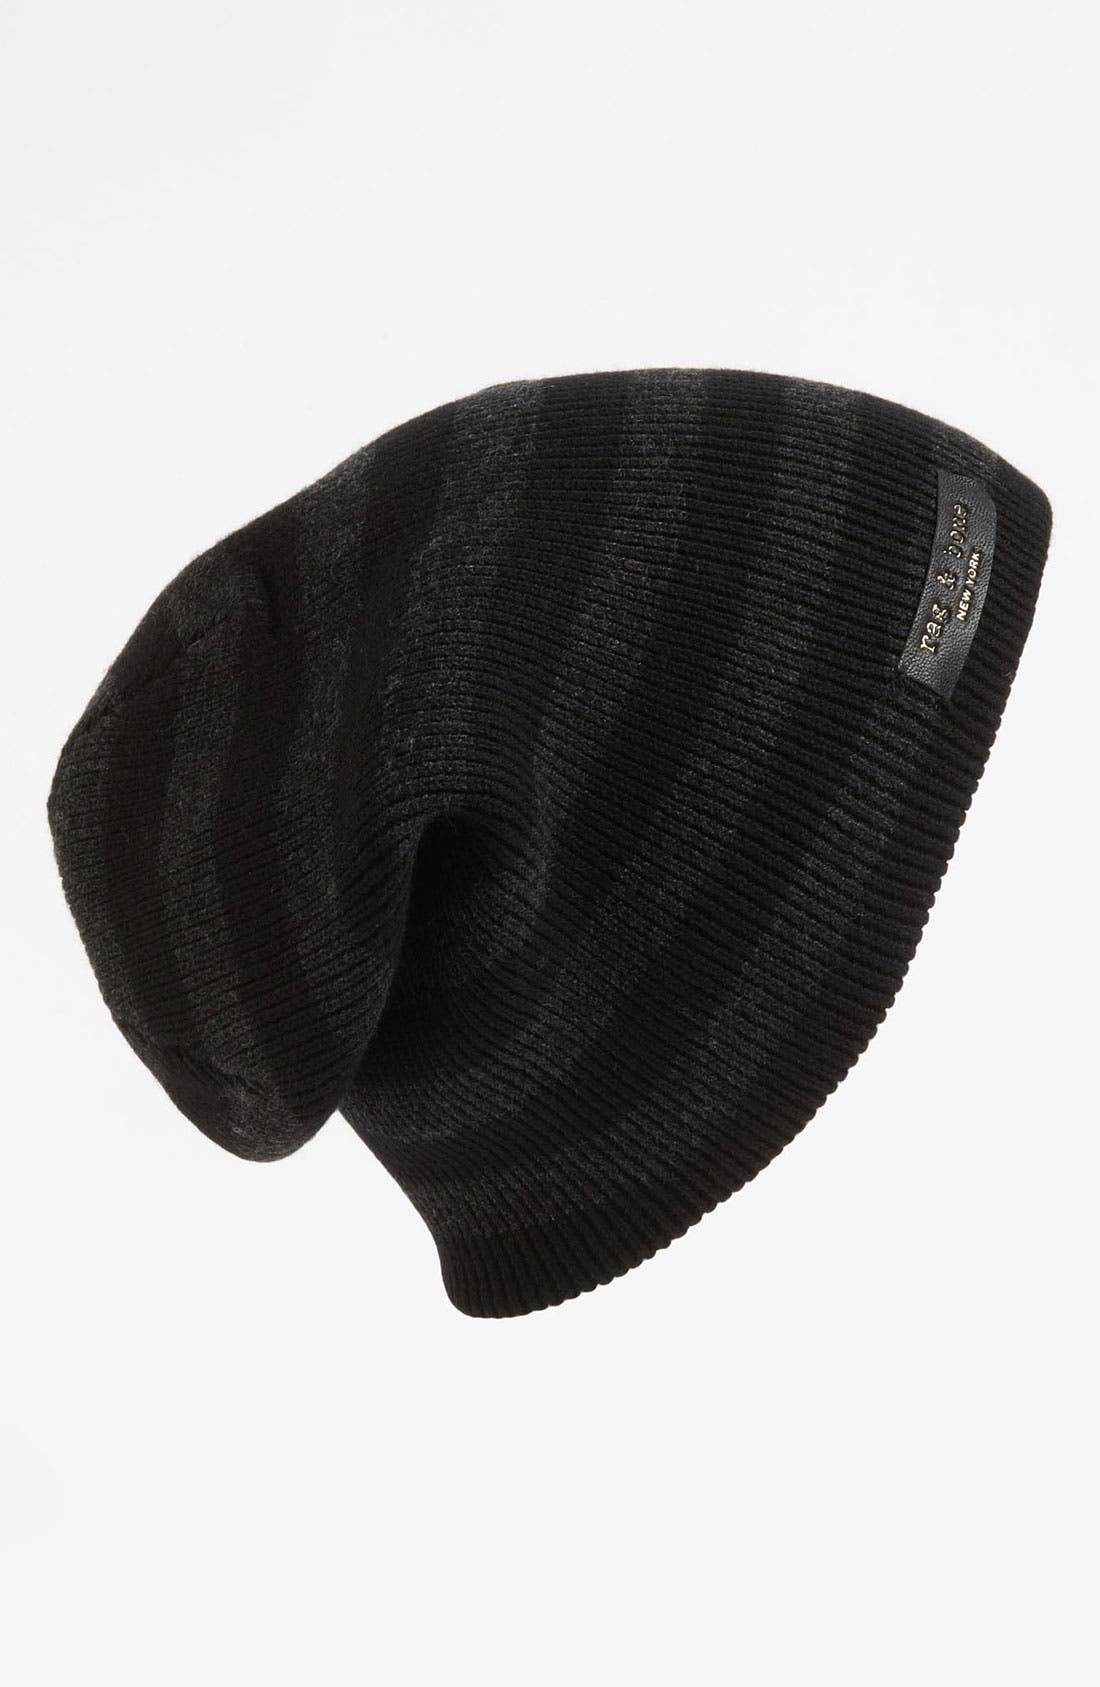 Main Image - rag & bone 'Bamburg' Reversible Beanie